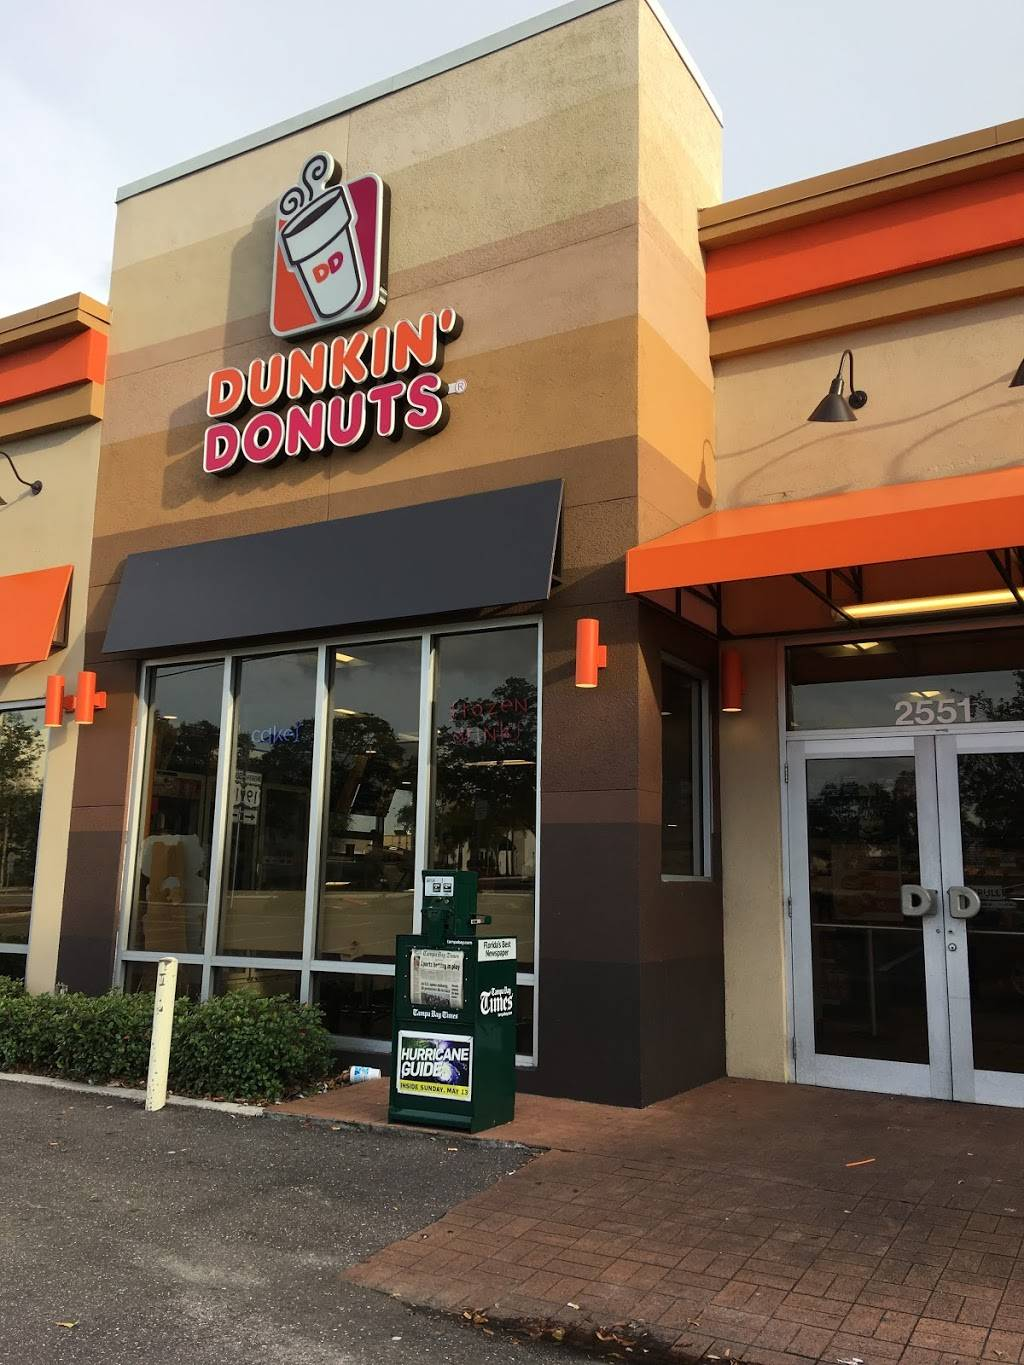 Dunkin Donuts   cafe   2551 Gulf to Bay Blvd, Clearwater, FL 33765, USA   7277255020 OR +1 727-725-5020